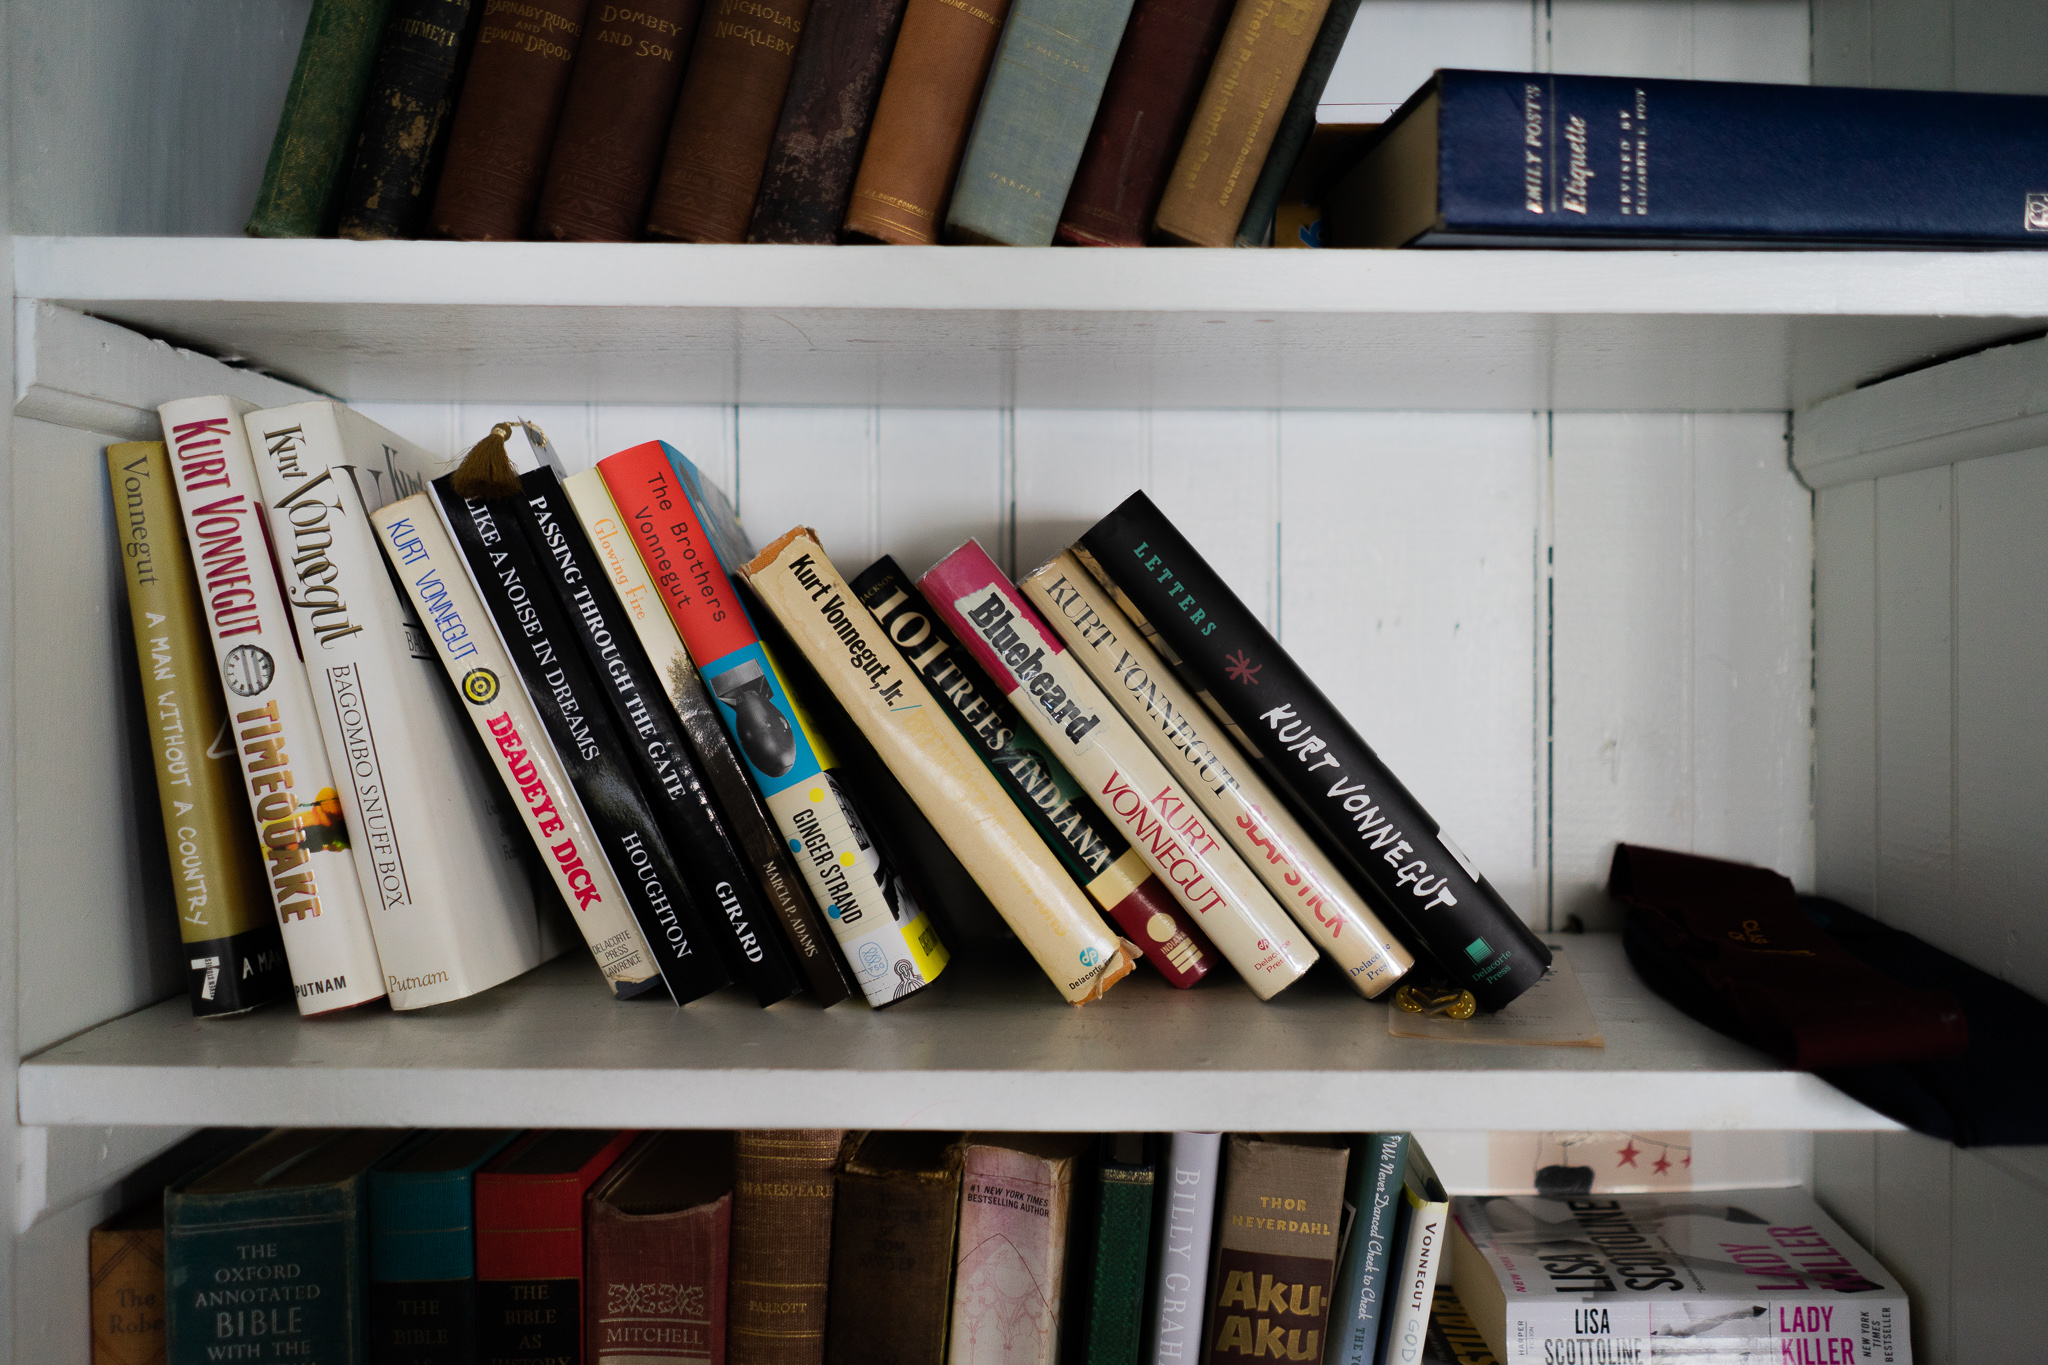 A bookshelf inside the original house's great room holds most all of Vonnegut's work. Kyra McAndrews read two – Slapstick and A Man Without a Country – during our three-day stay.